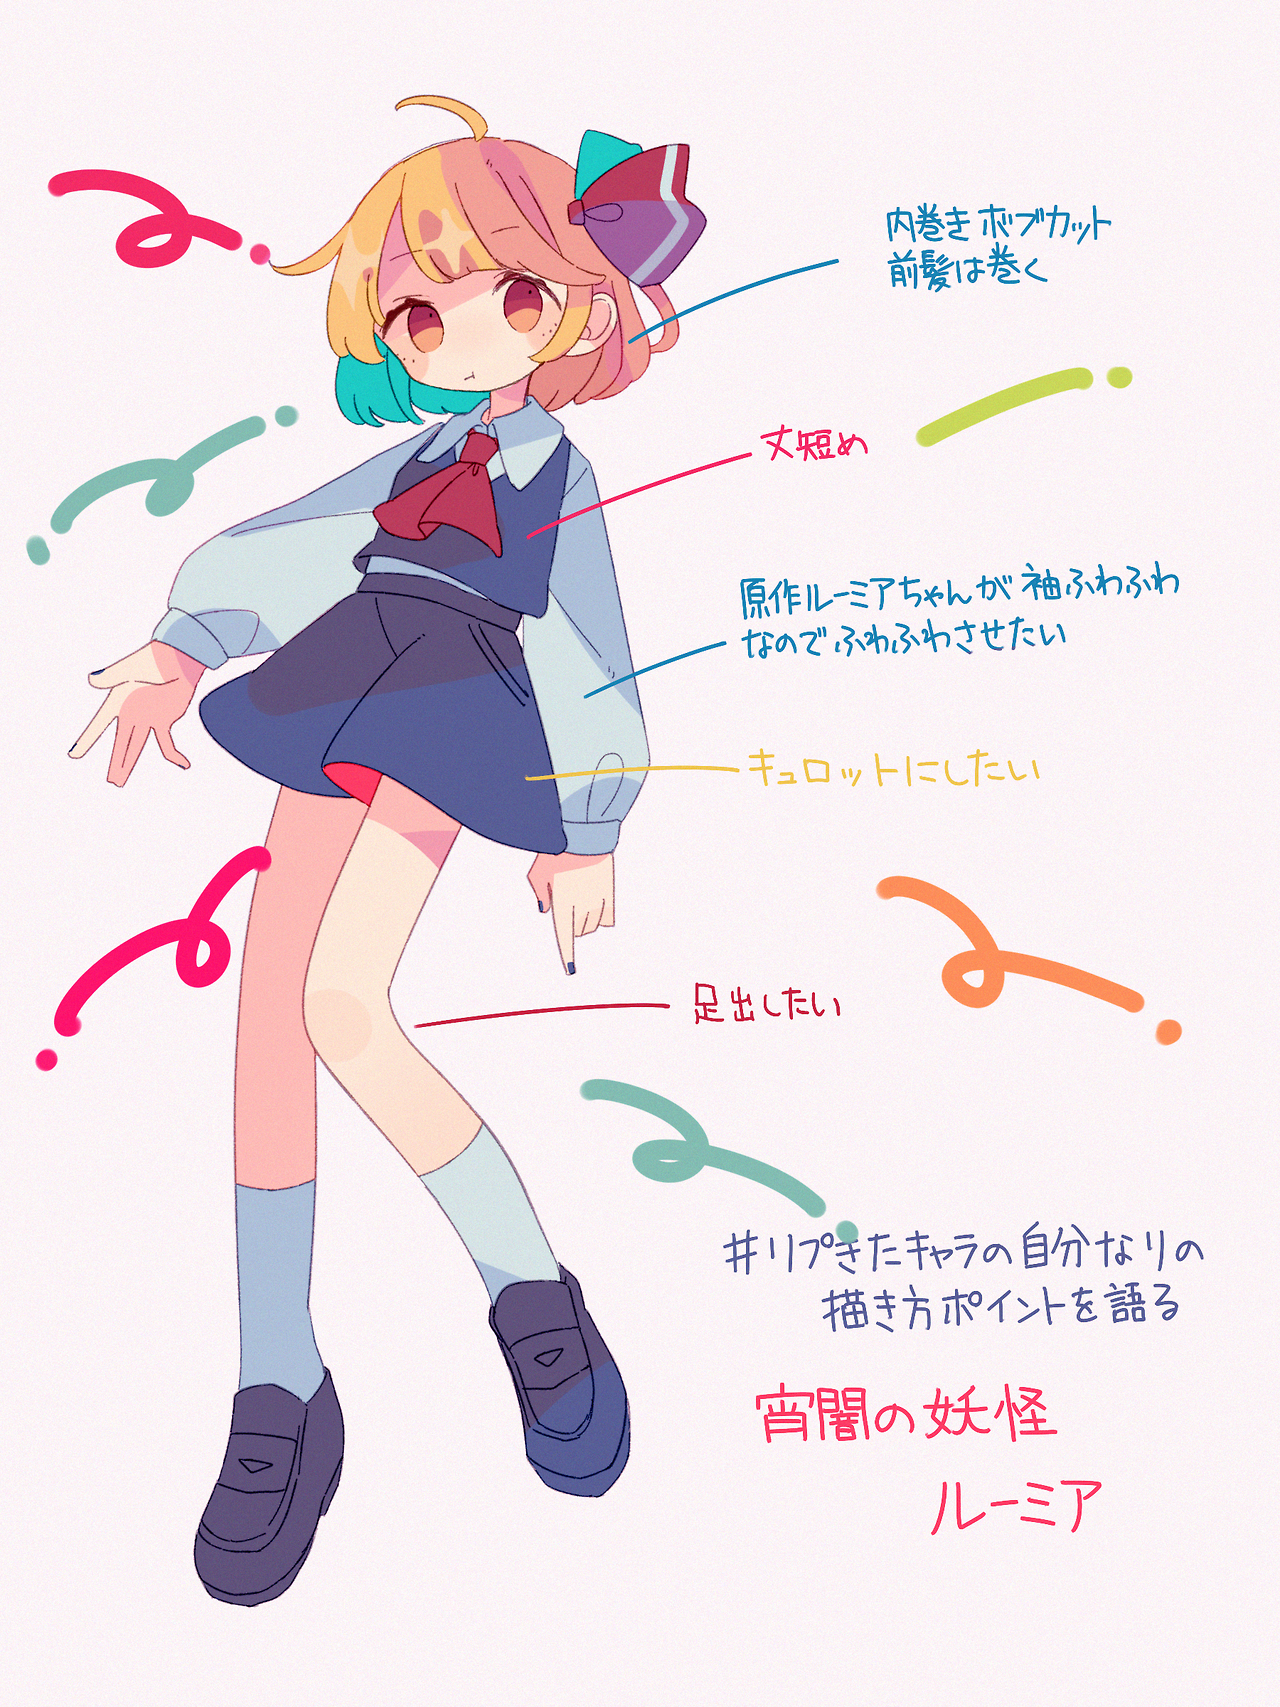 Pin by nope on artanime pinterest anime character reference